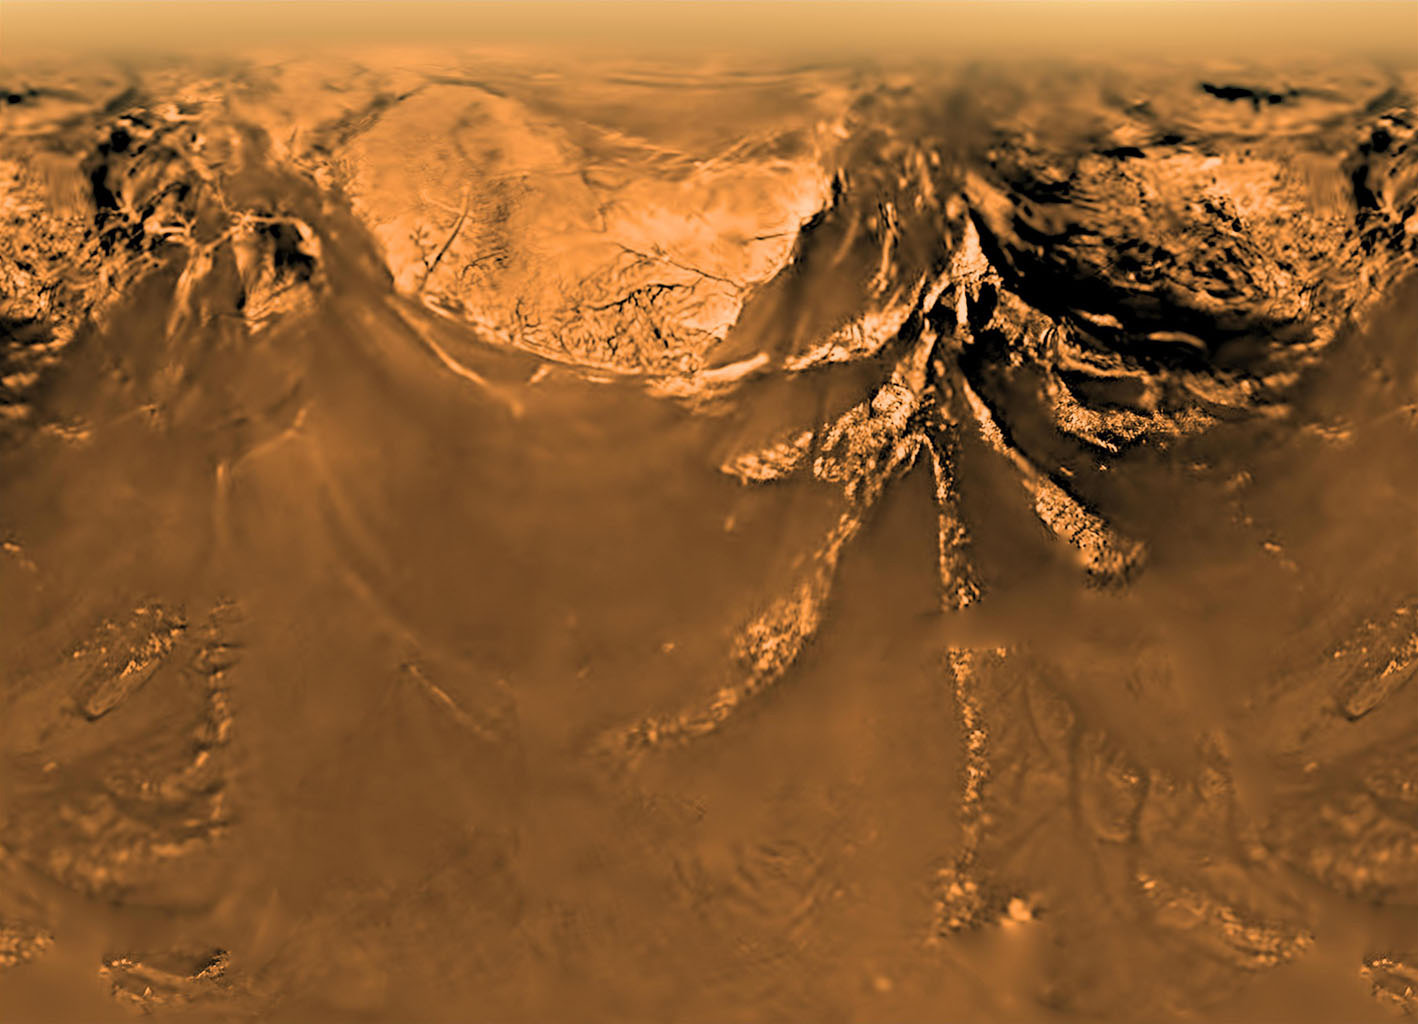 This poster shows a flattened (Mercator) projection of the Huygens probe's view from 10 kilometers altitude (6 miles). The Huygens probe was delivered to Saturn's moon Titan by NASA's Cassini spacecraft.